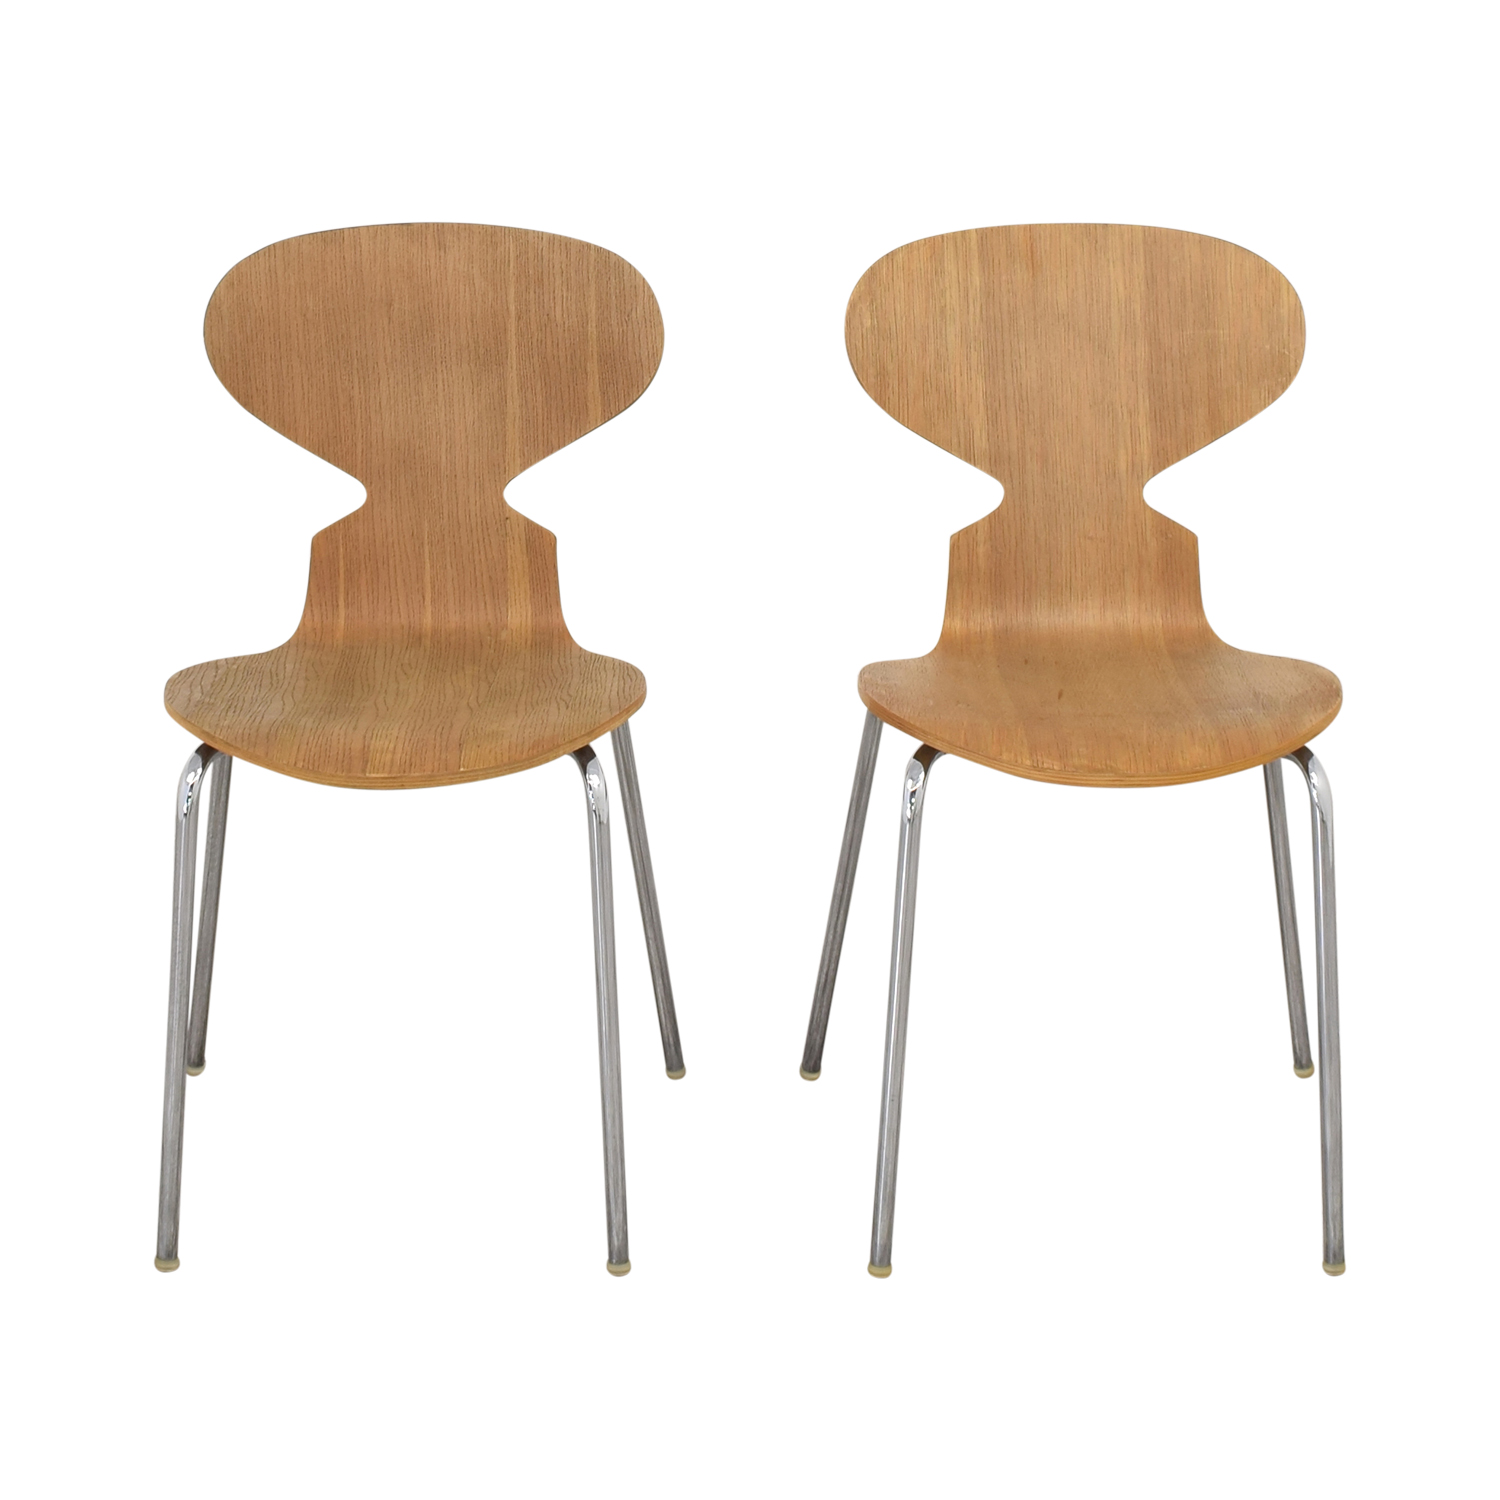 CB2 CB2 Side Chairs second hand